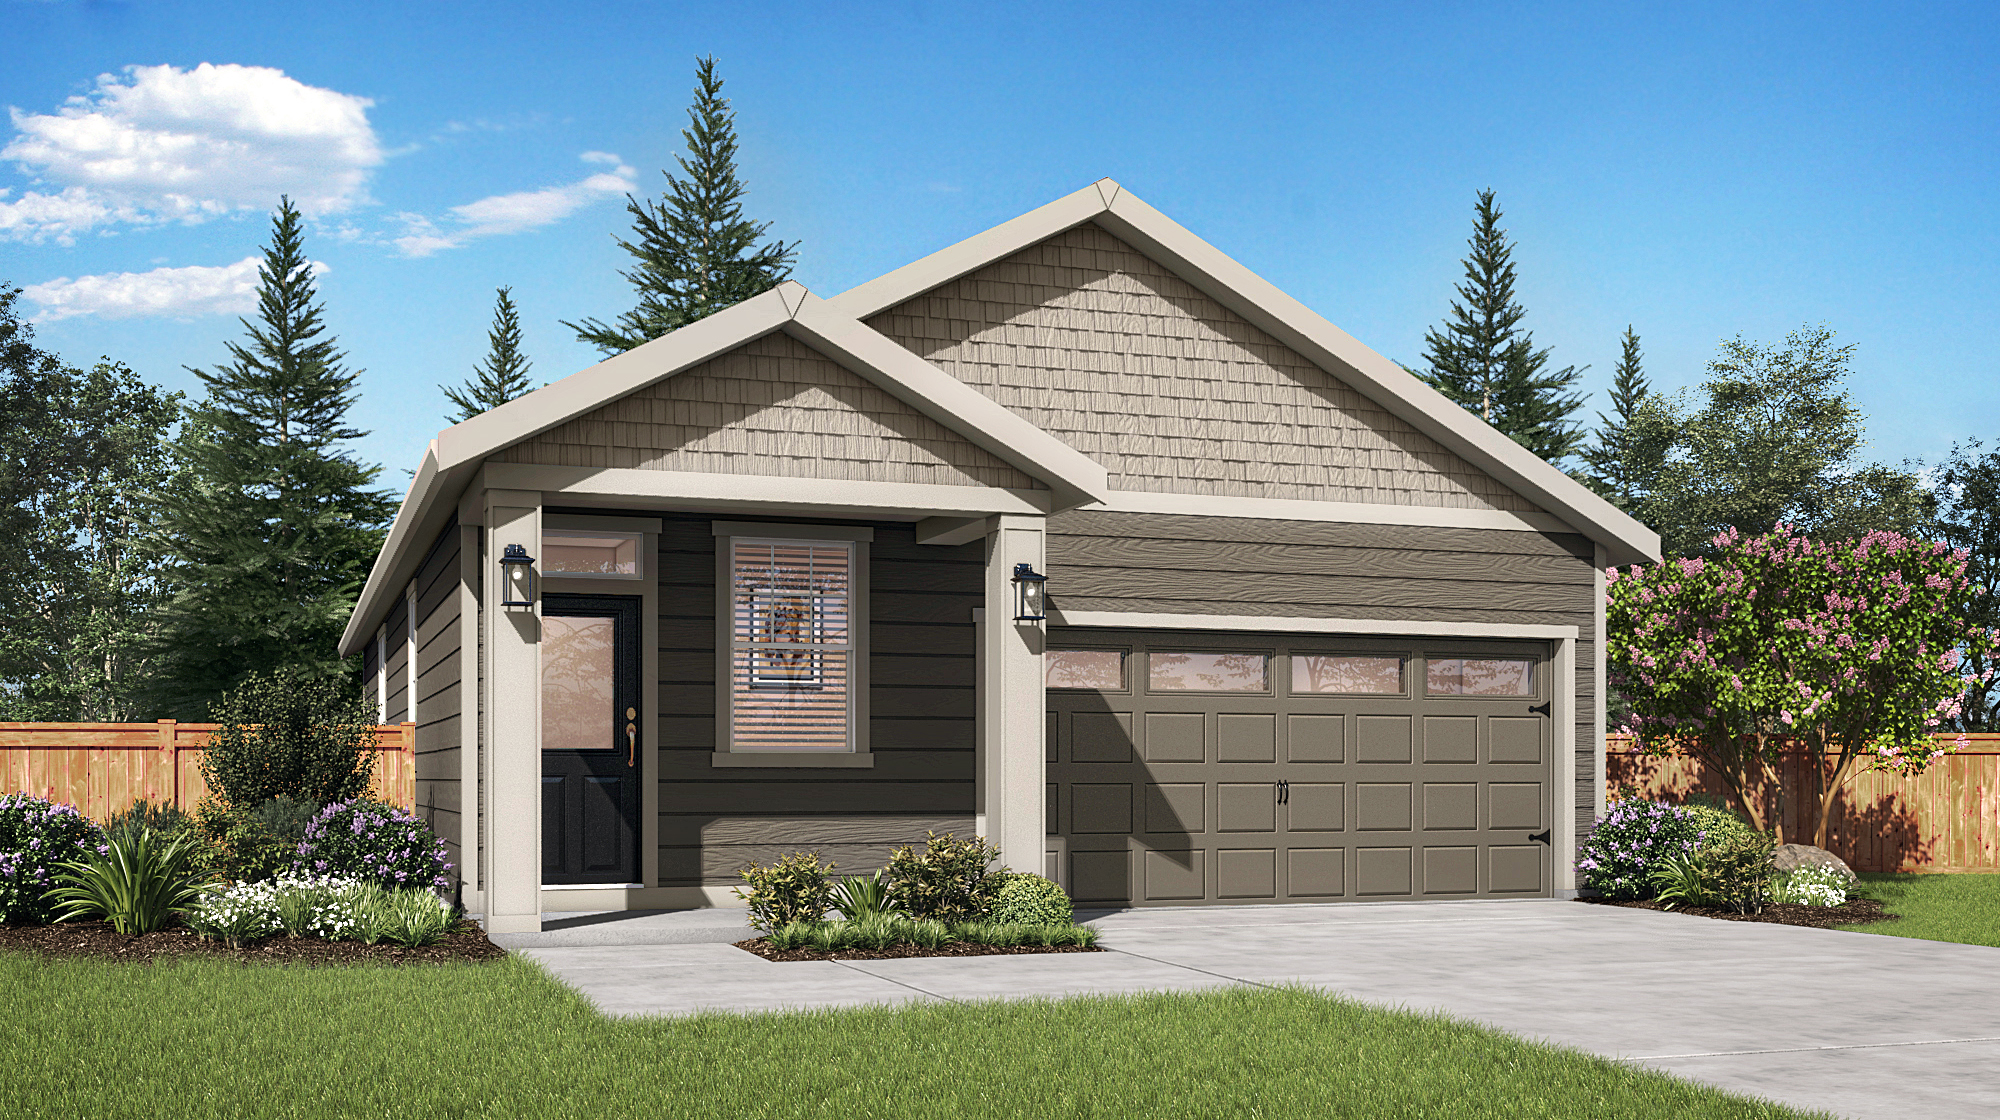 The Aspen by LGI Homes is Available Now at Bay Vista